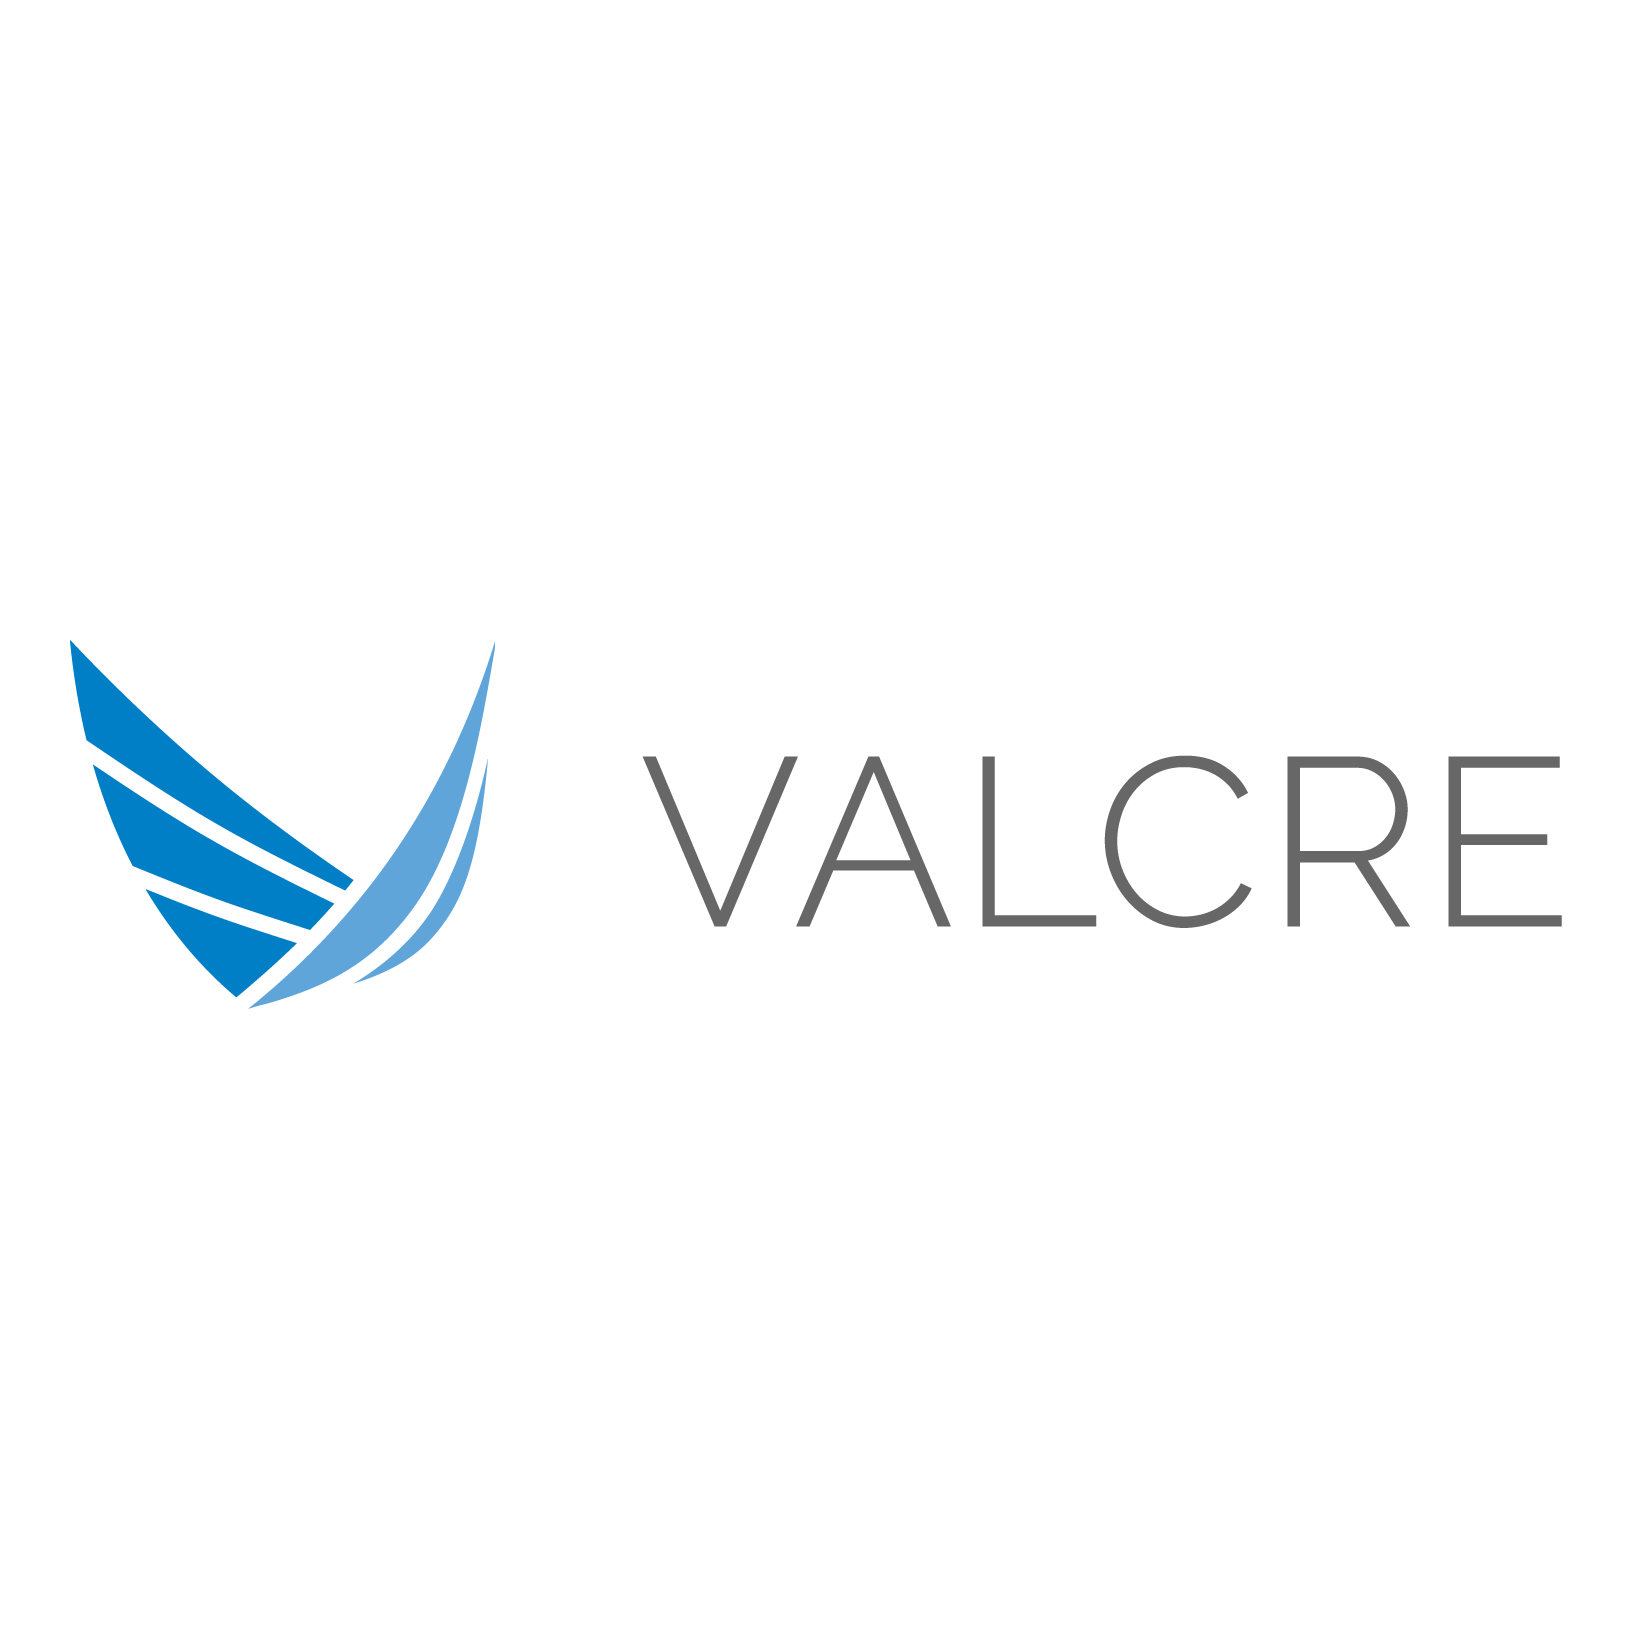 Valcre_Logo.png